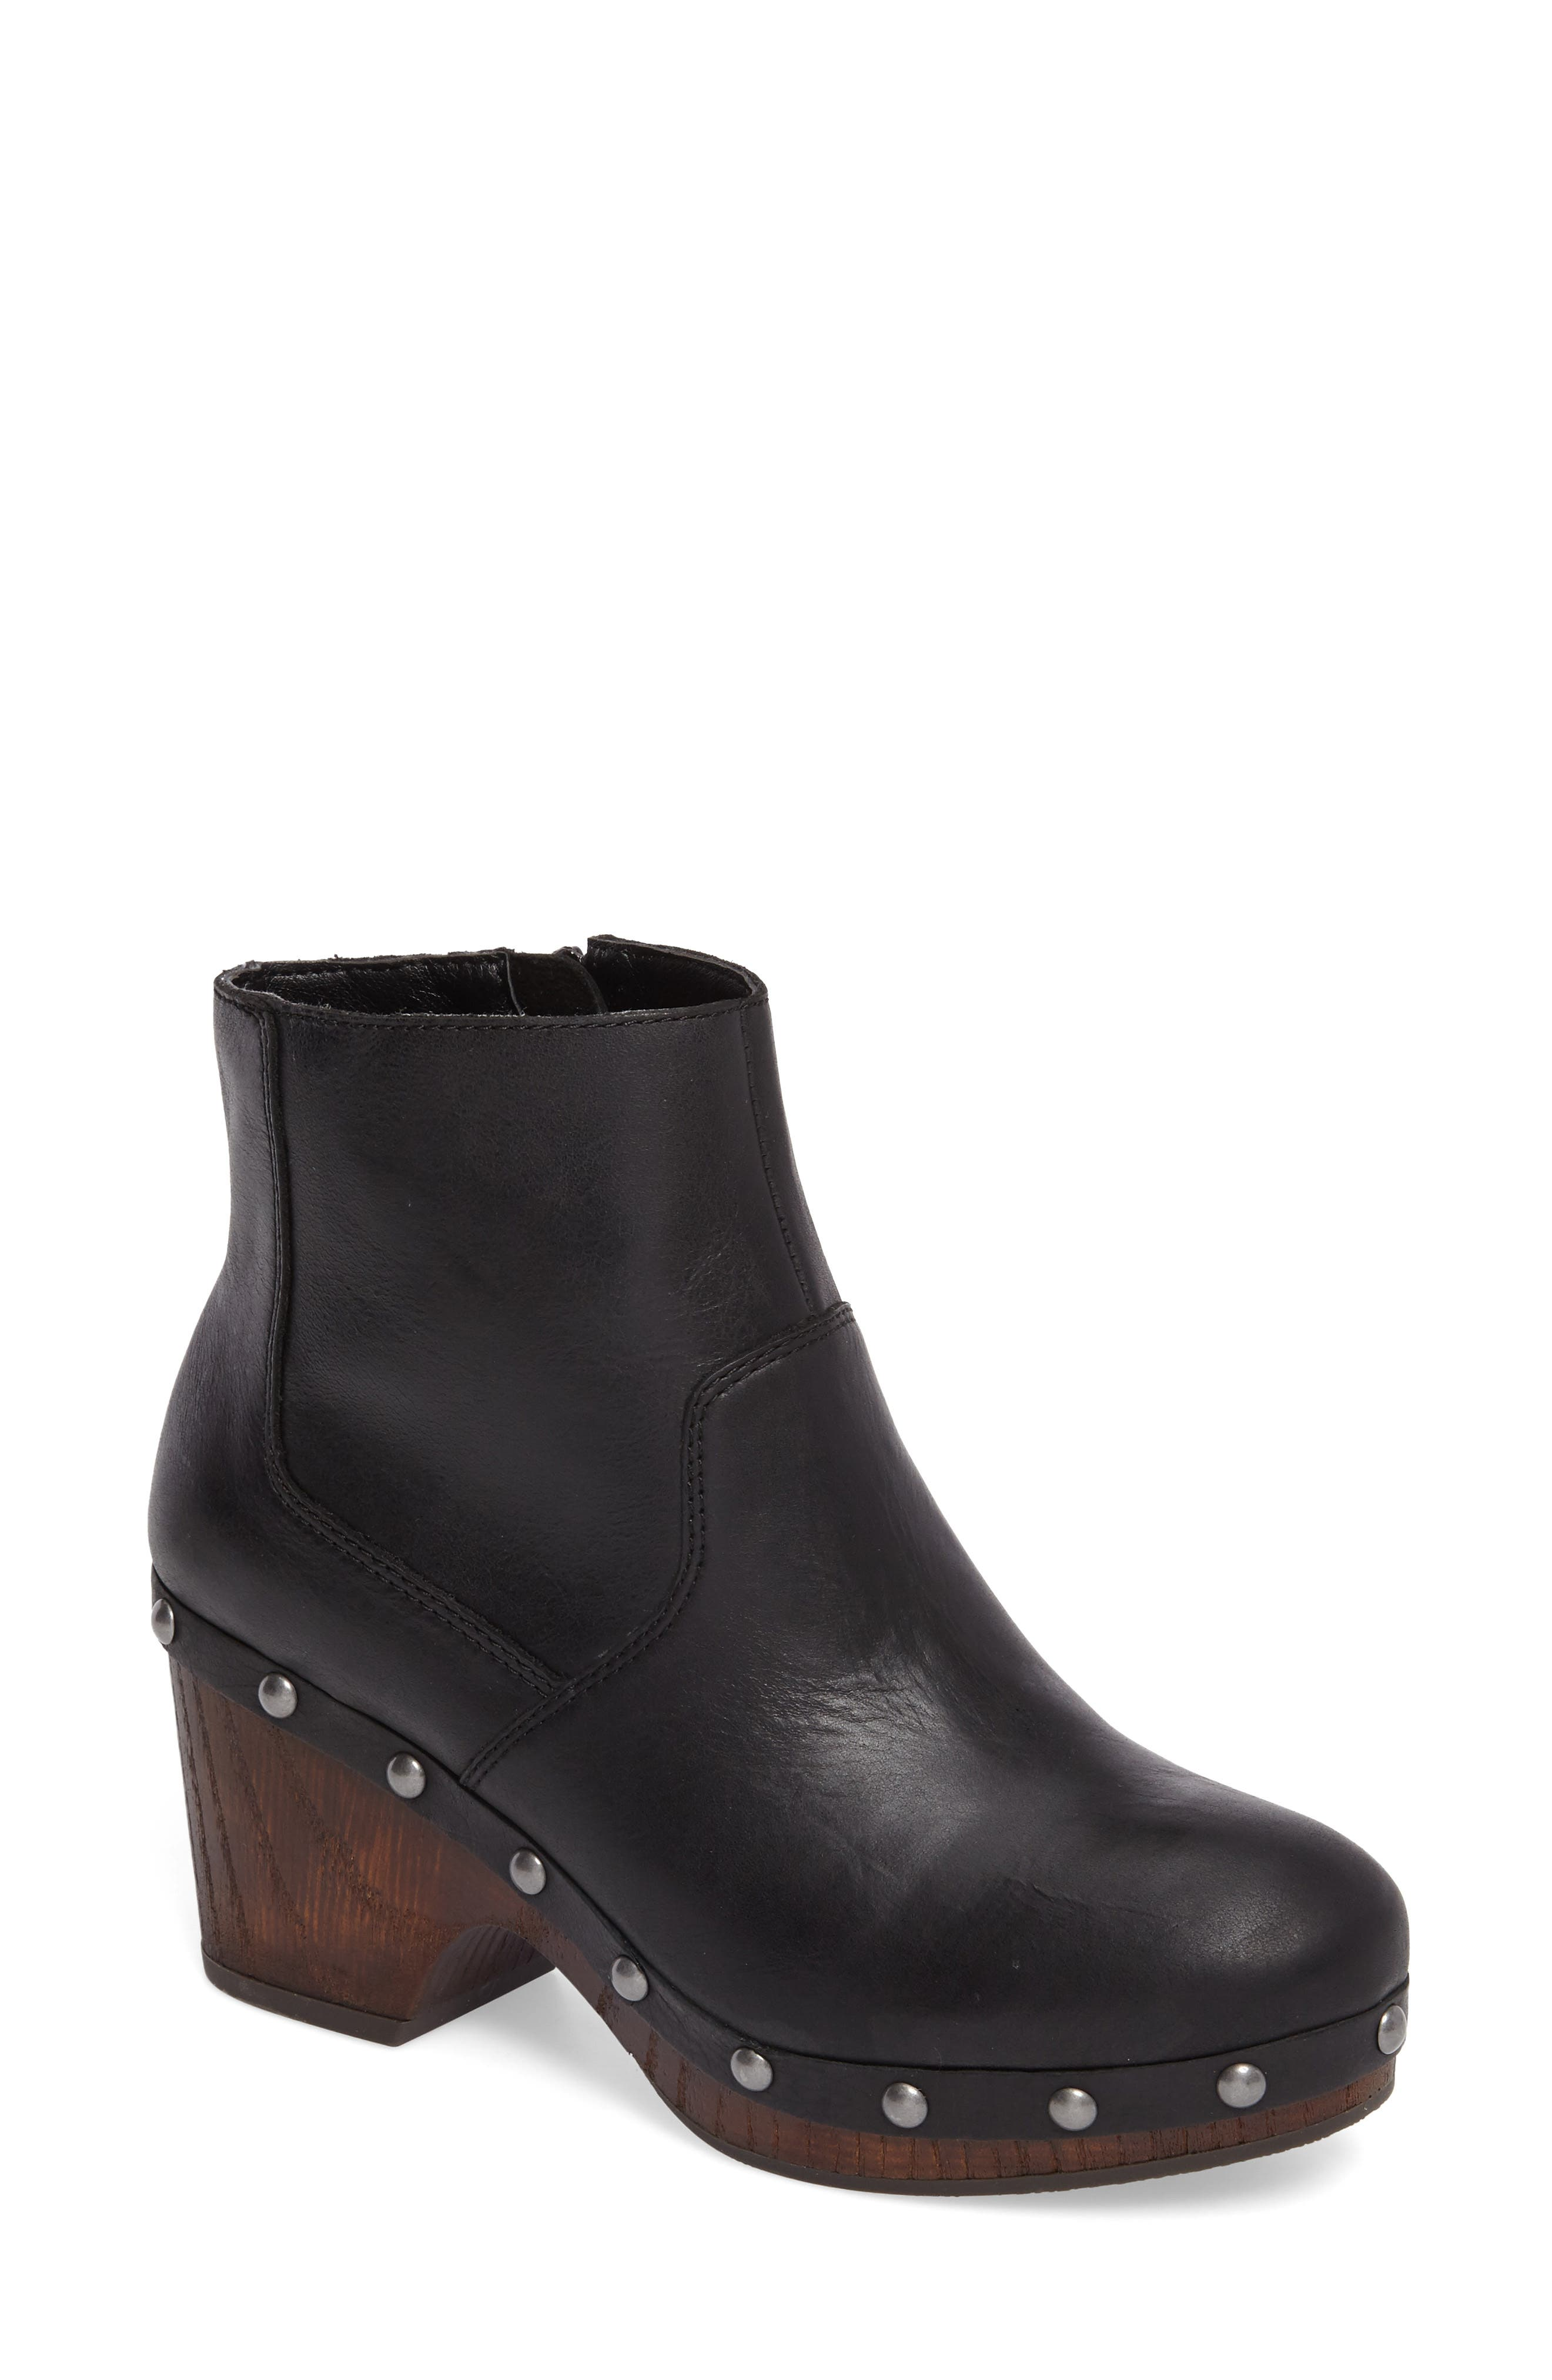 Yasamin Bootie,                             Main thumbnail 1, color,                             Black Leather